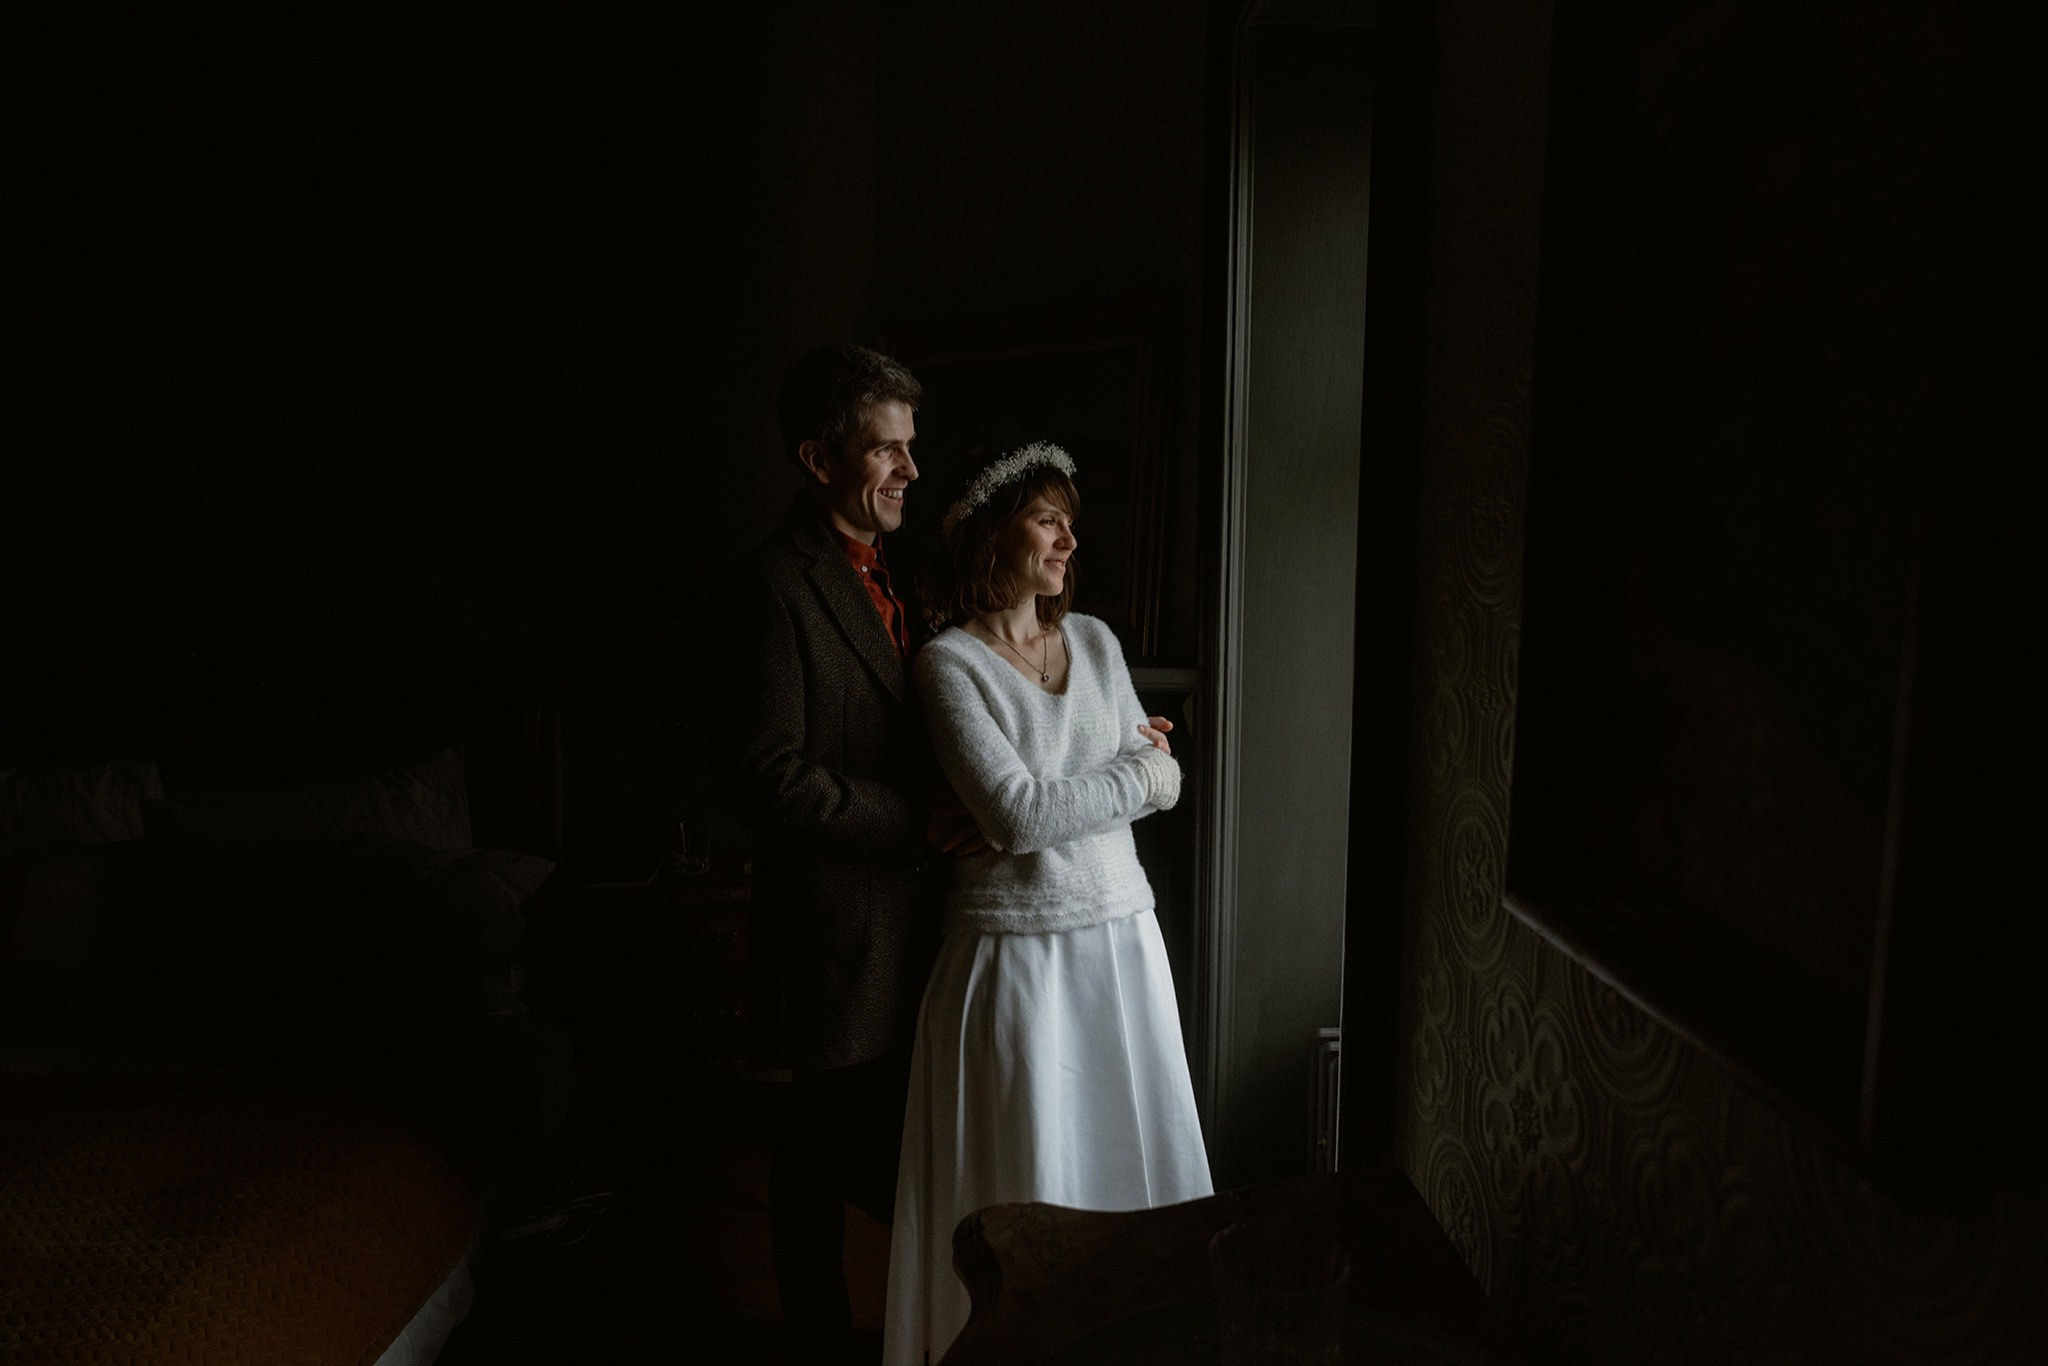 Scottish elopement wedding venues Scotland